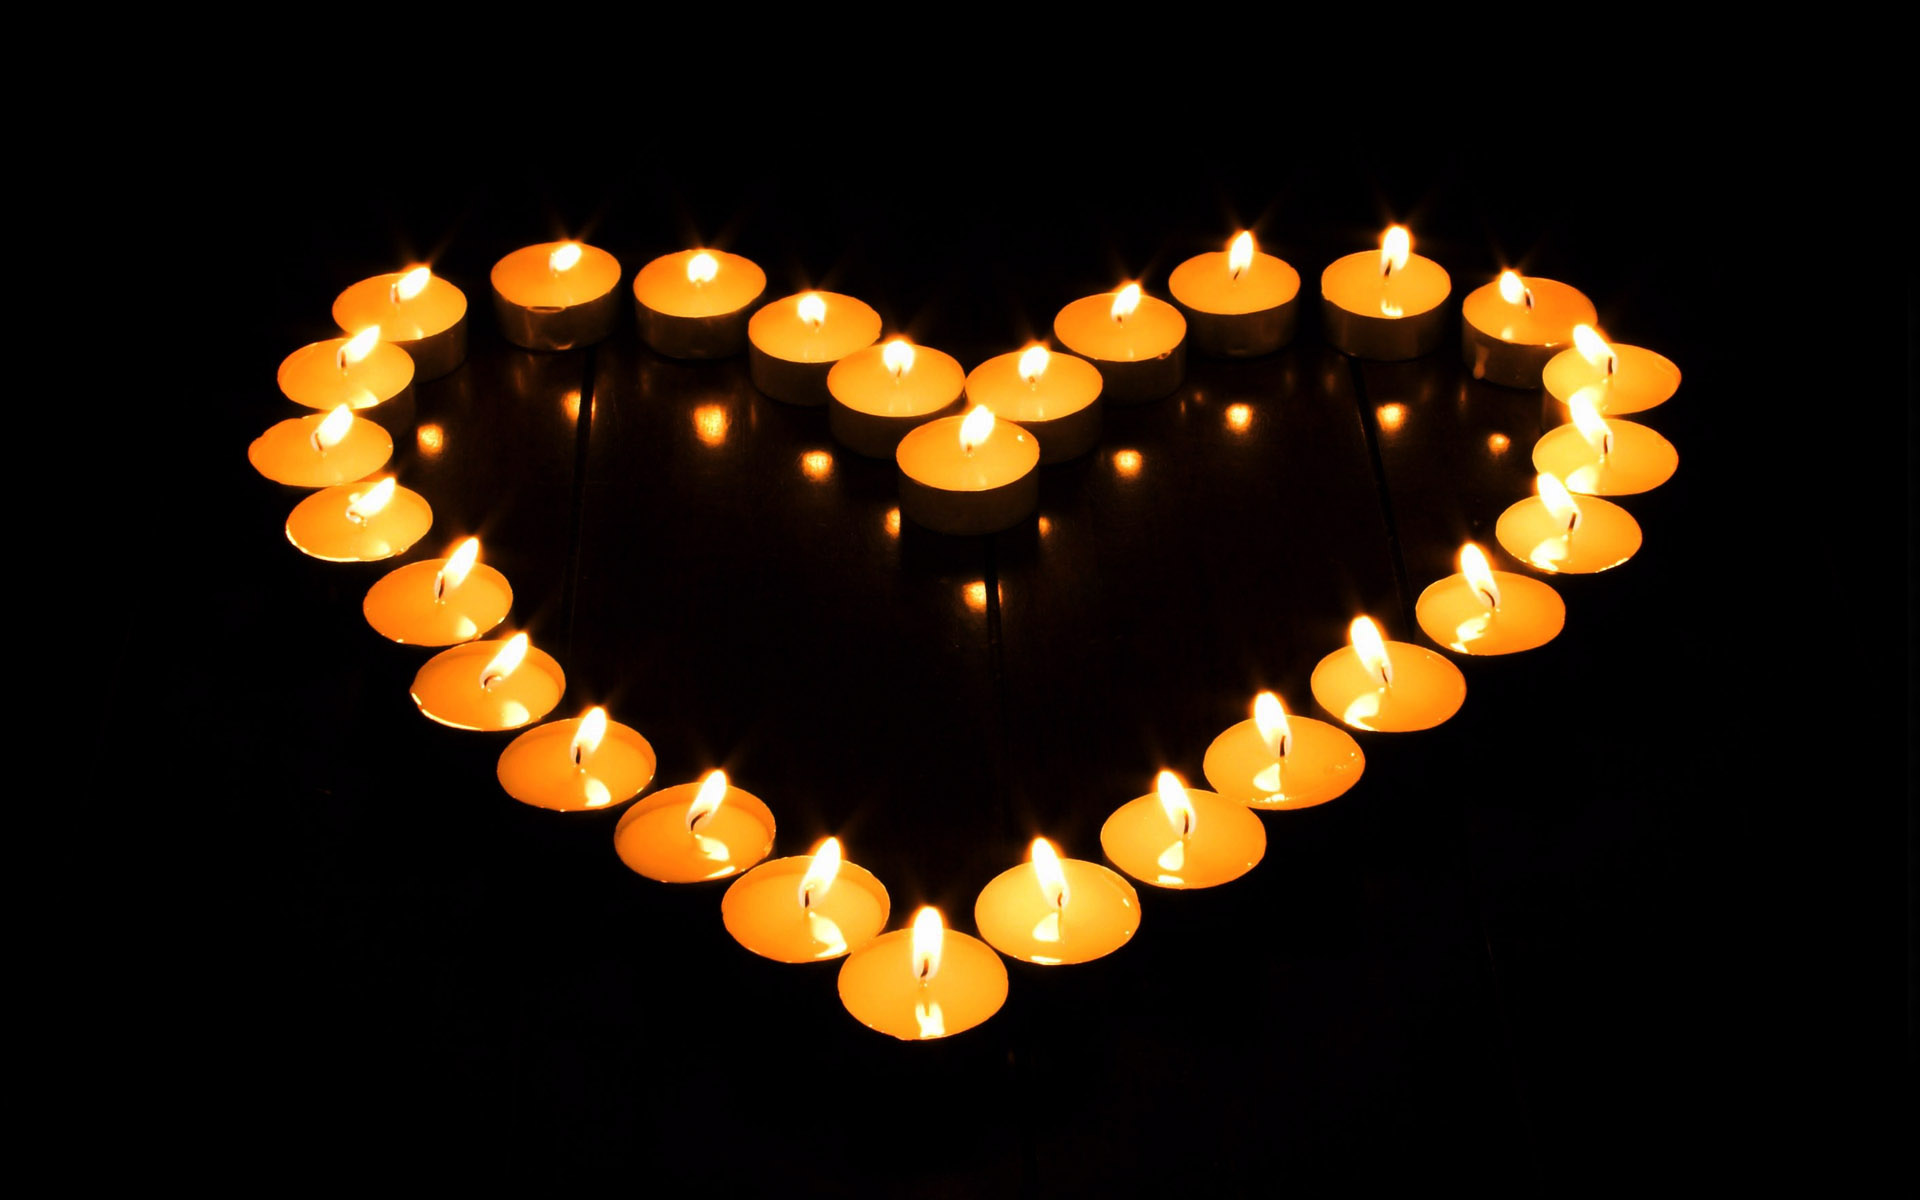 Candle wallpaper 4592